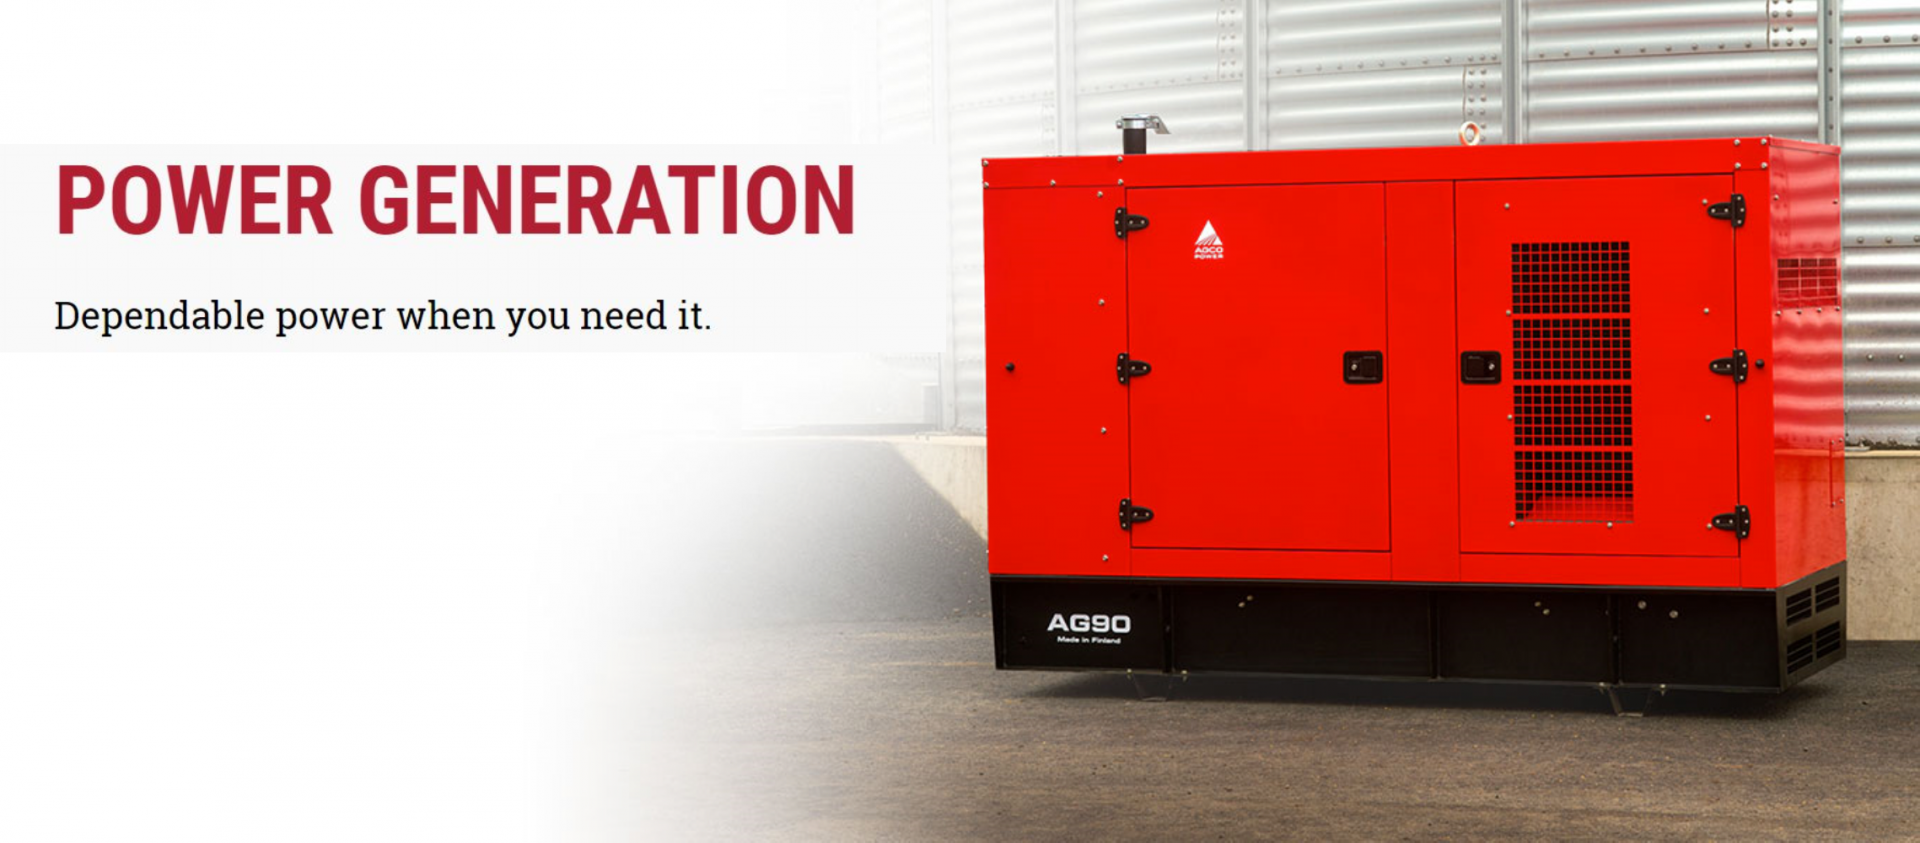 AGCO-POWER-BANNER_Page_1